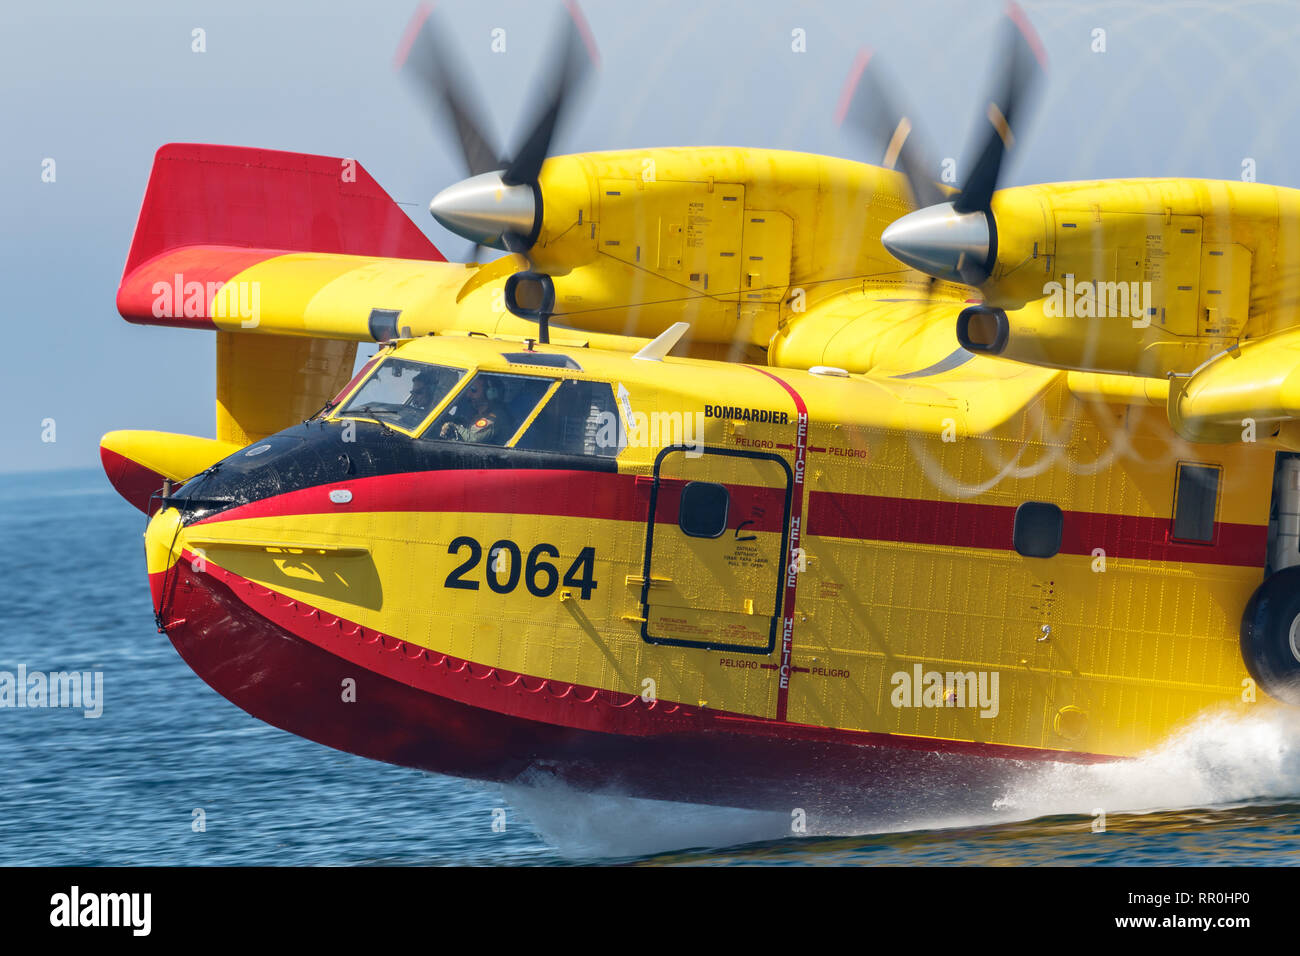 MOTRIL, GRANADA,  SPAIN-JUN 16:  Seaplane Canadair CL-415  taking part in an exhibition on the 13th airshow of Motril on June 16, 2018, in Motril, Gra - Stock Image